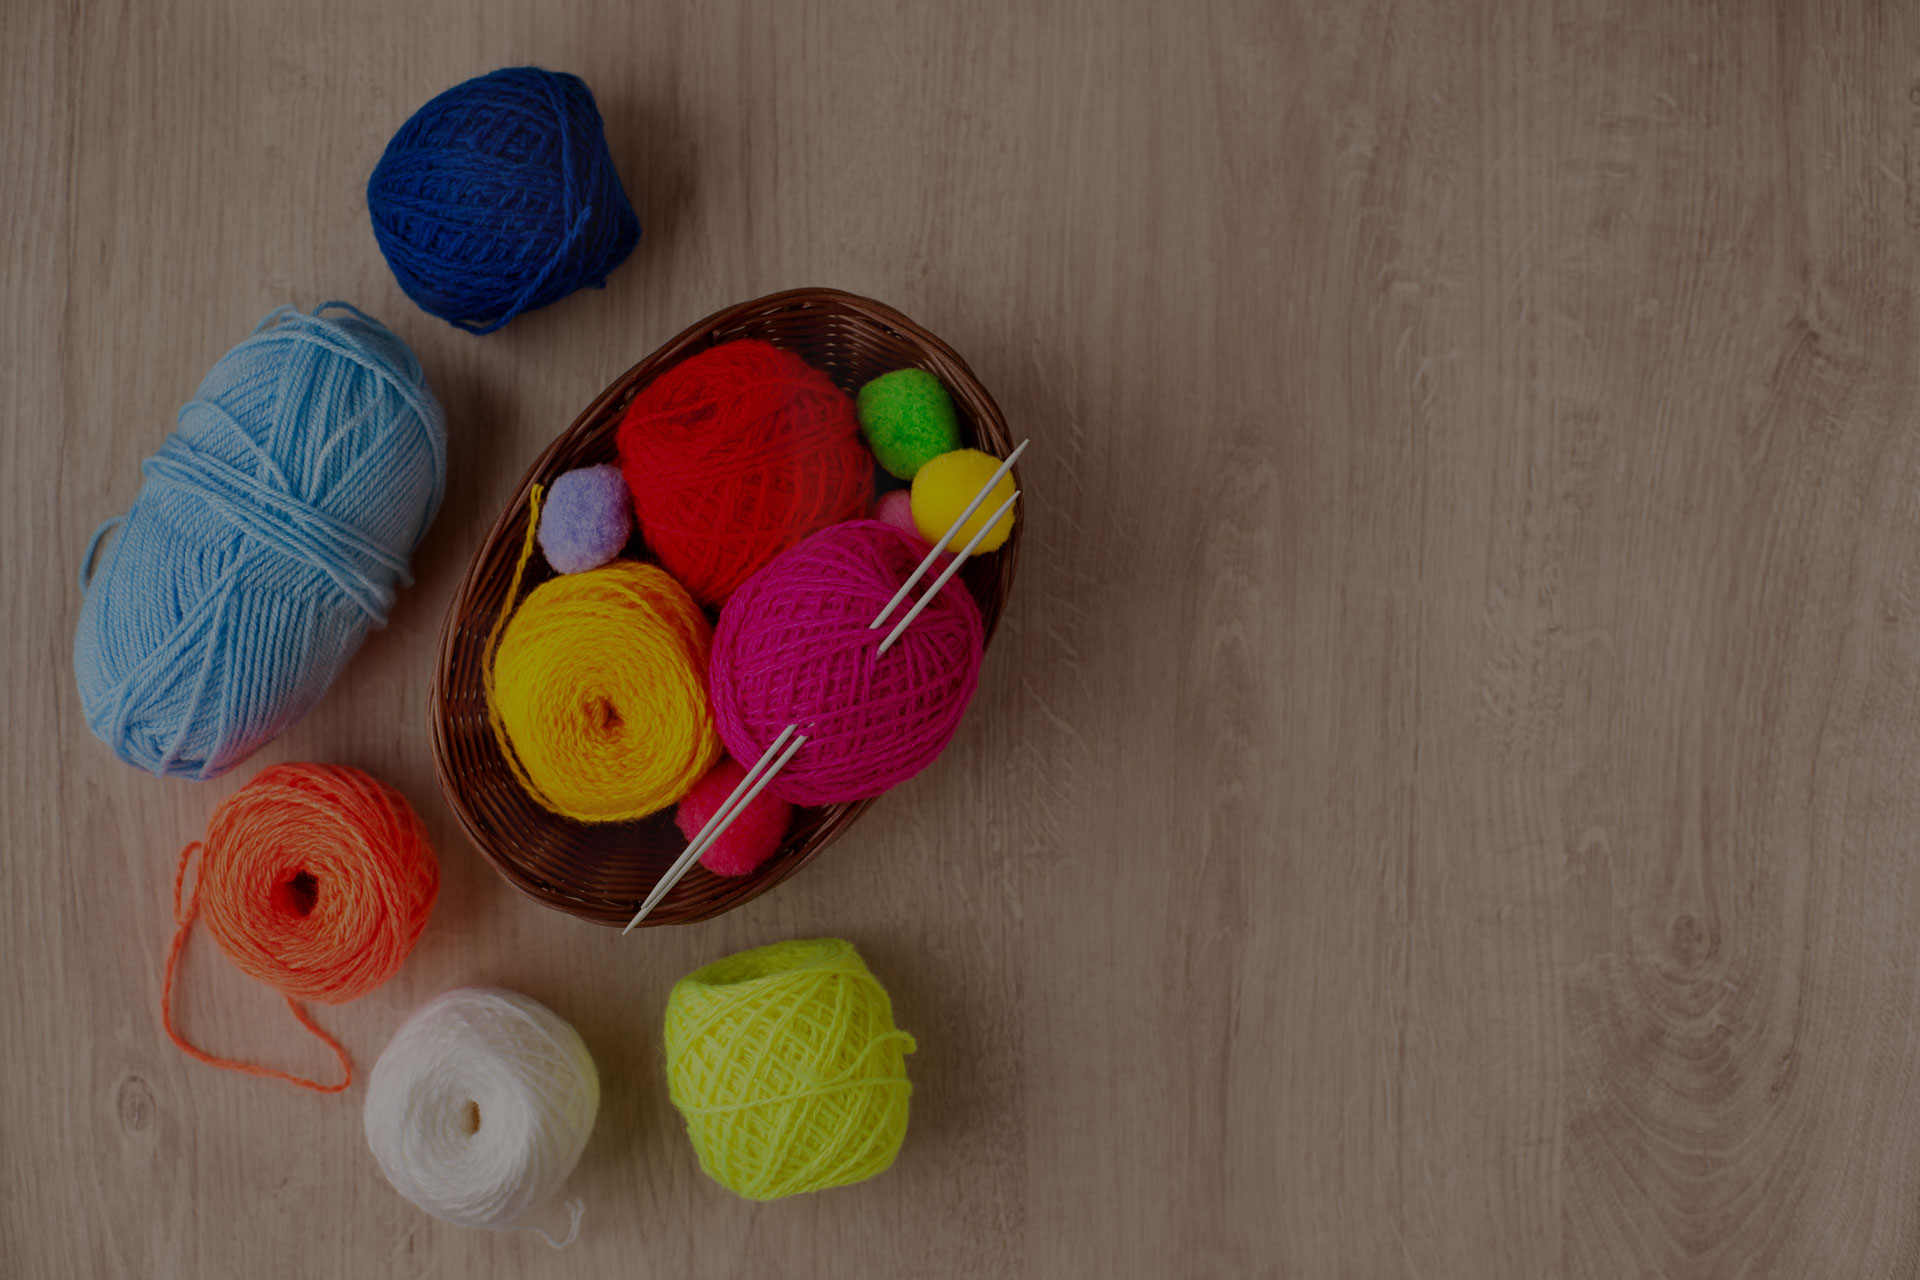 Knitting needles and multi-colored yarn look bright.